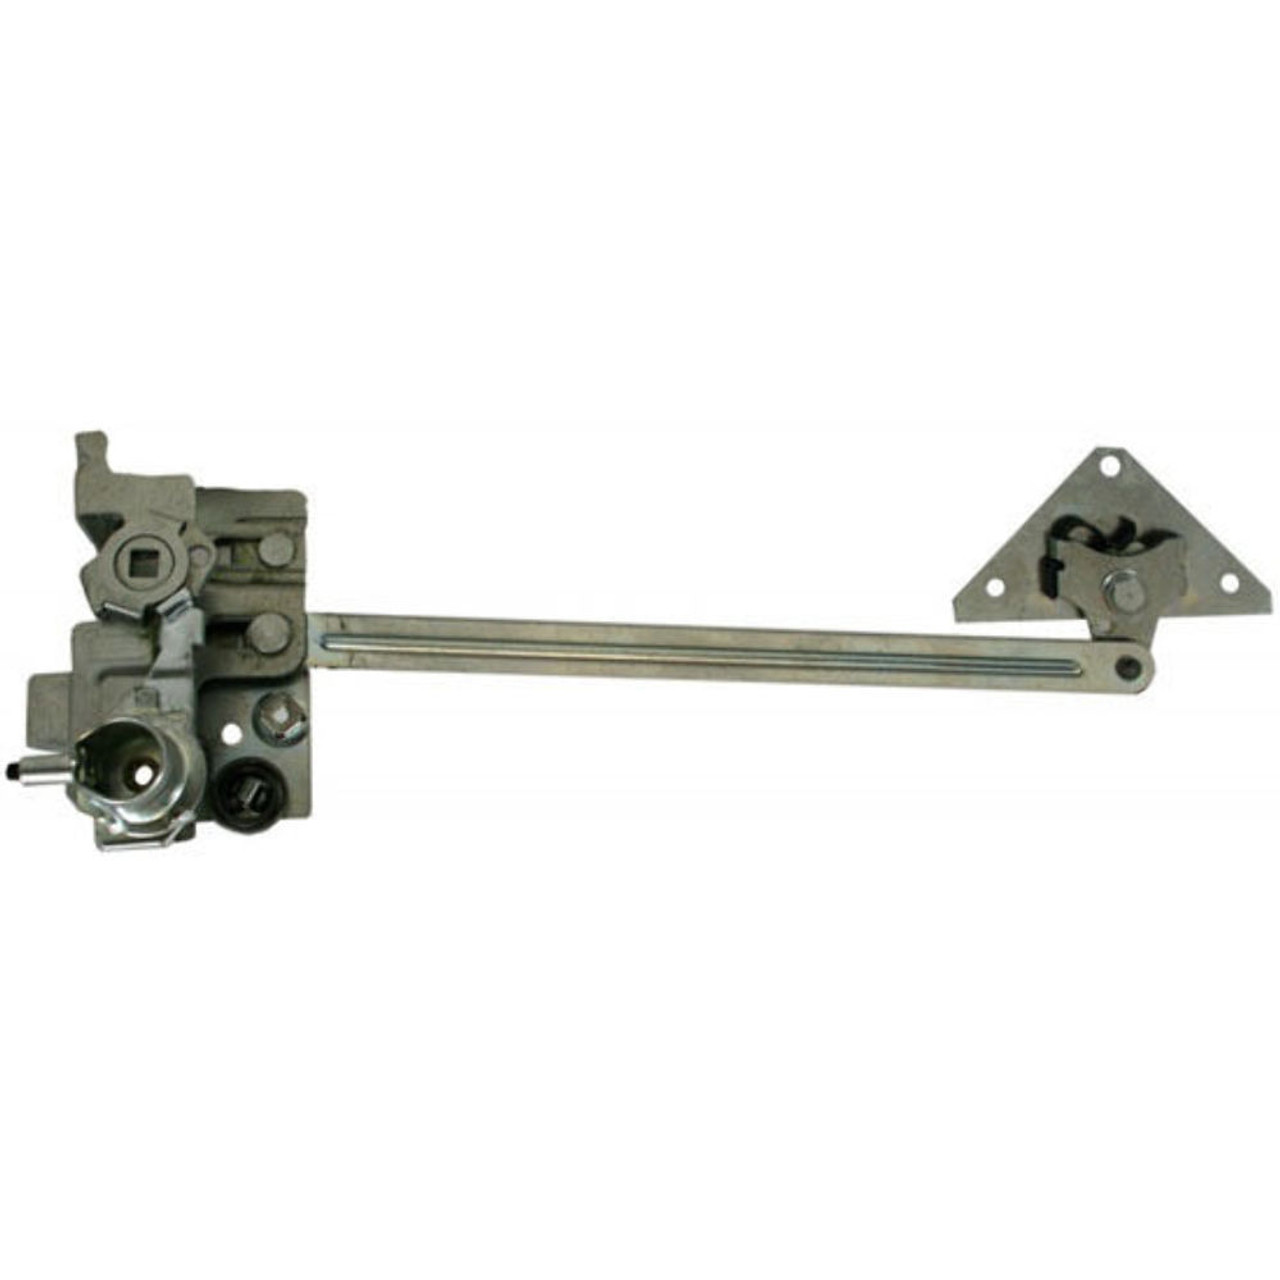 1932-34 Ford Pickup Door Latch, Right Hand Side